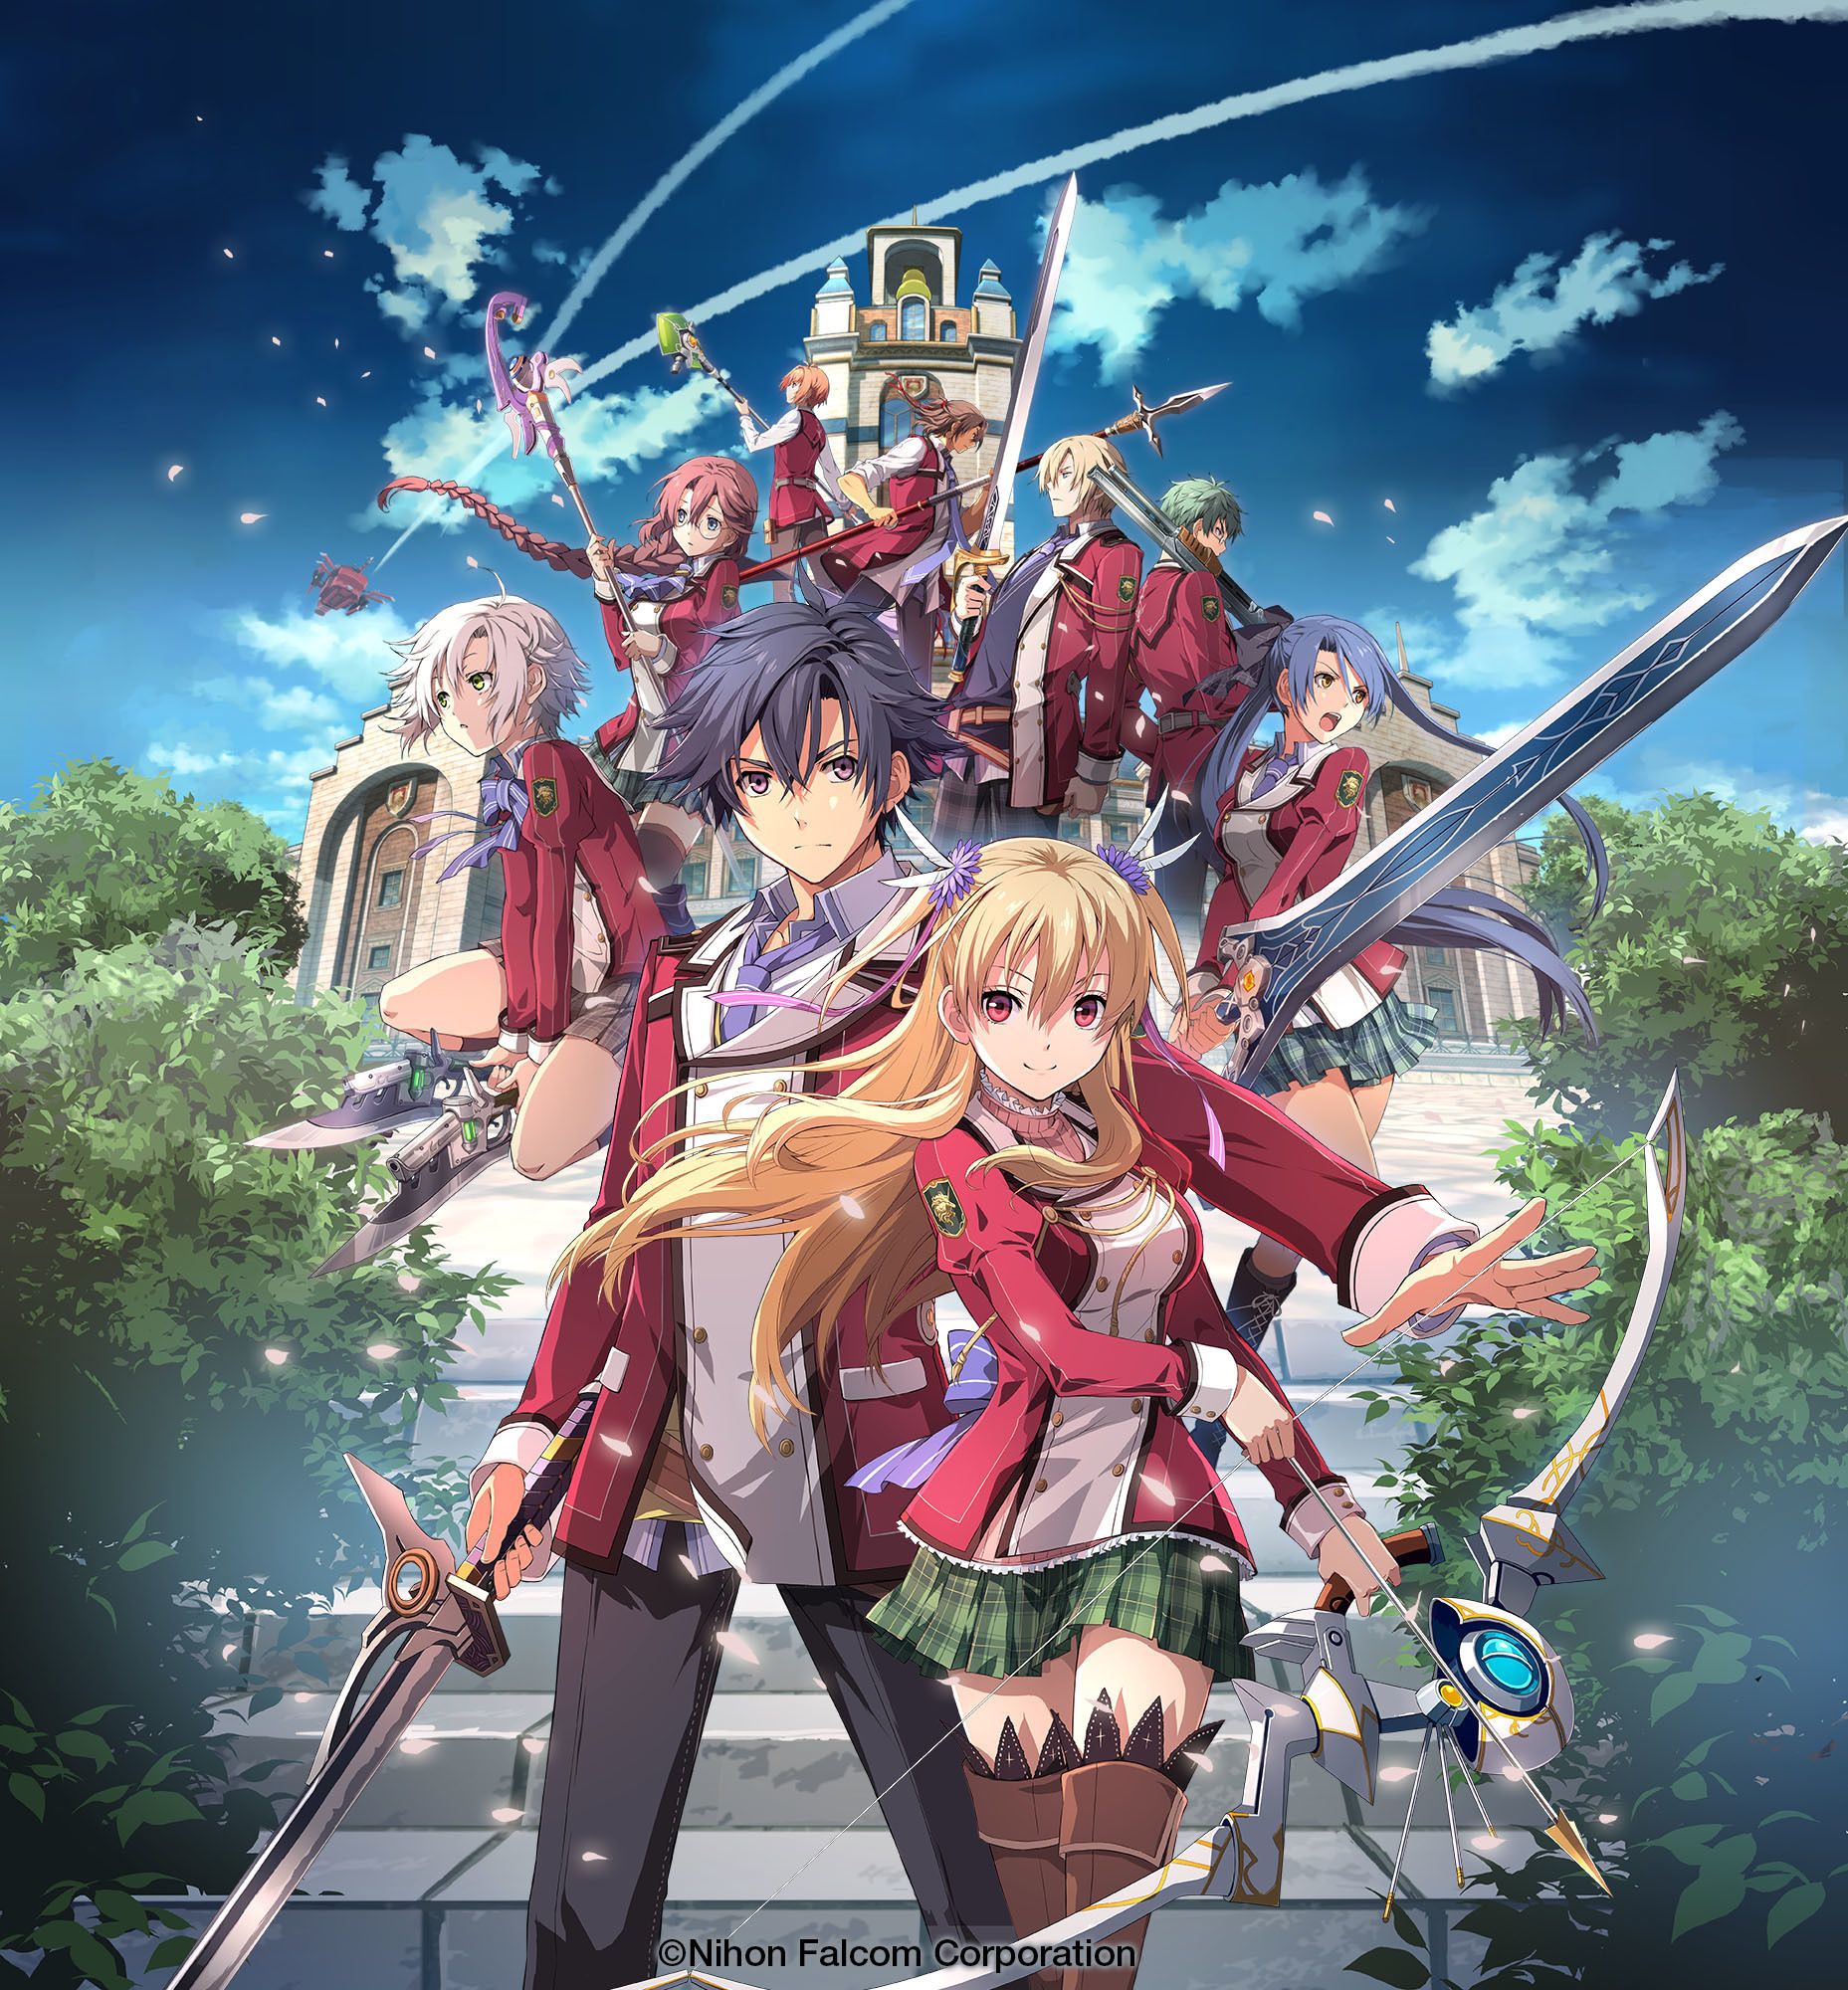 『英雄伝説 閃の軌跡』 (C)Nihon Falcom Corporation / (C)The Legend of Heroes Musical Partners